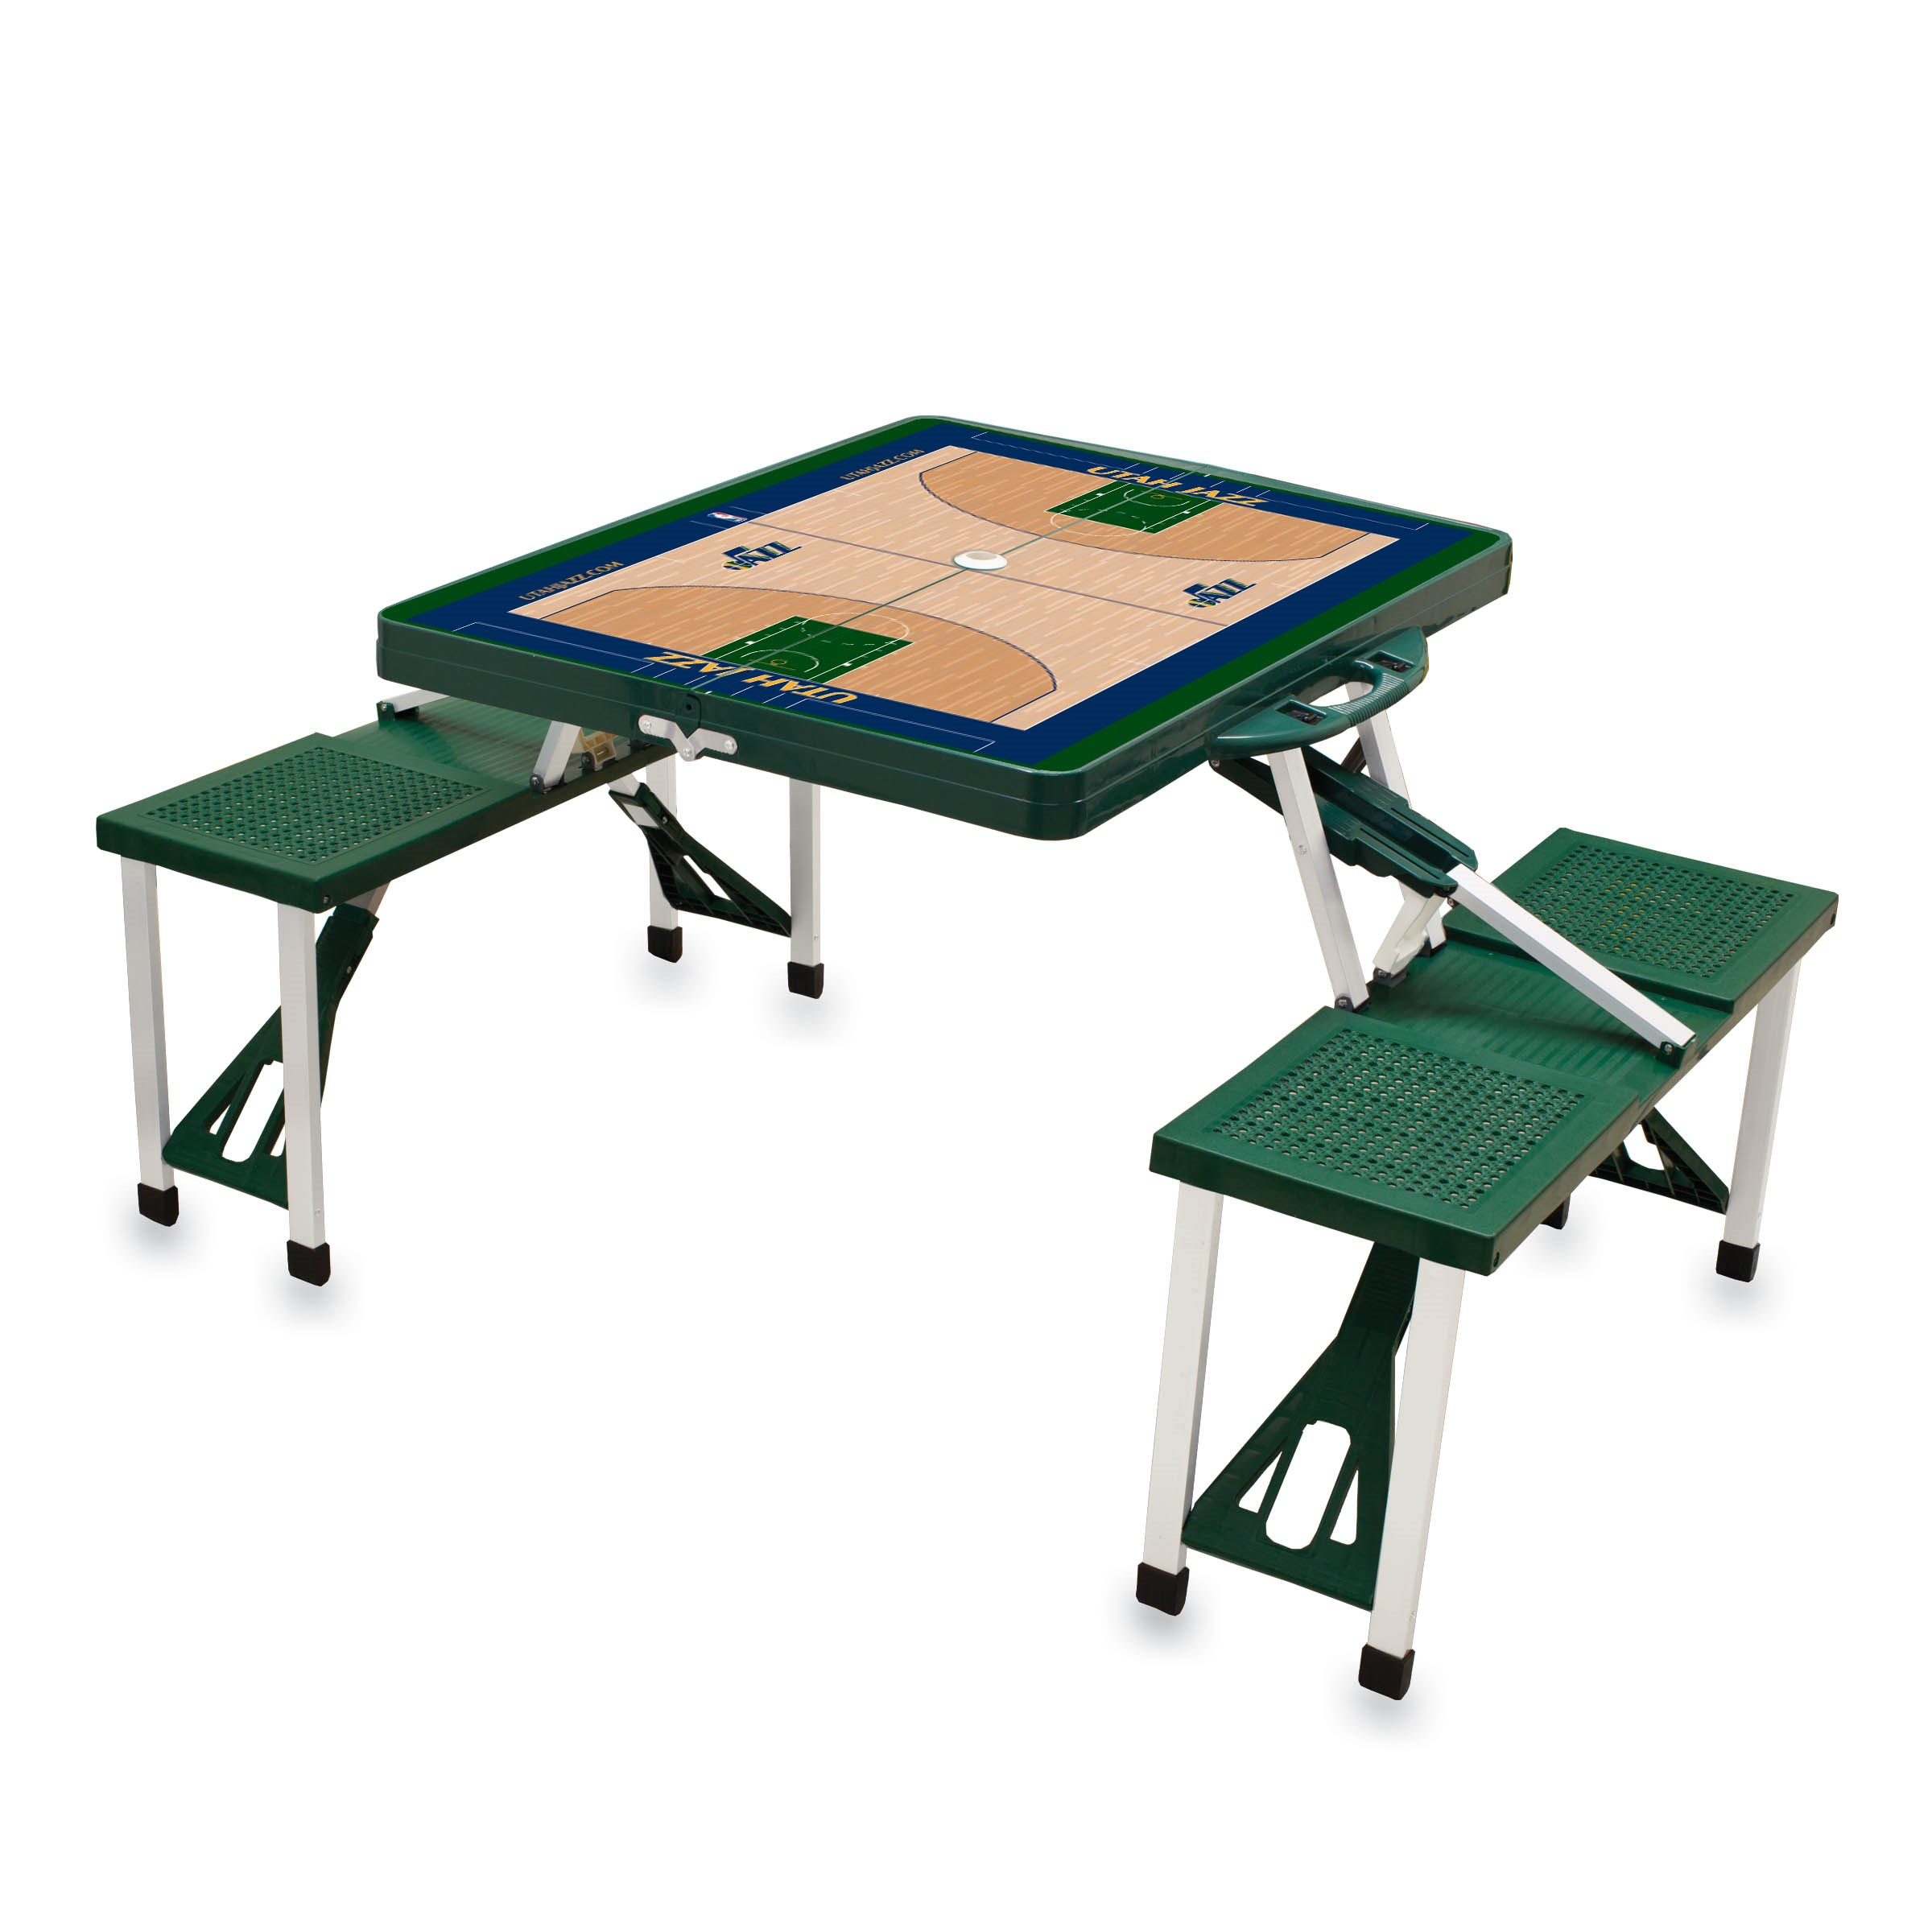 Picnic Time Nba Picnic Table Sport Utah Jazz